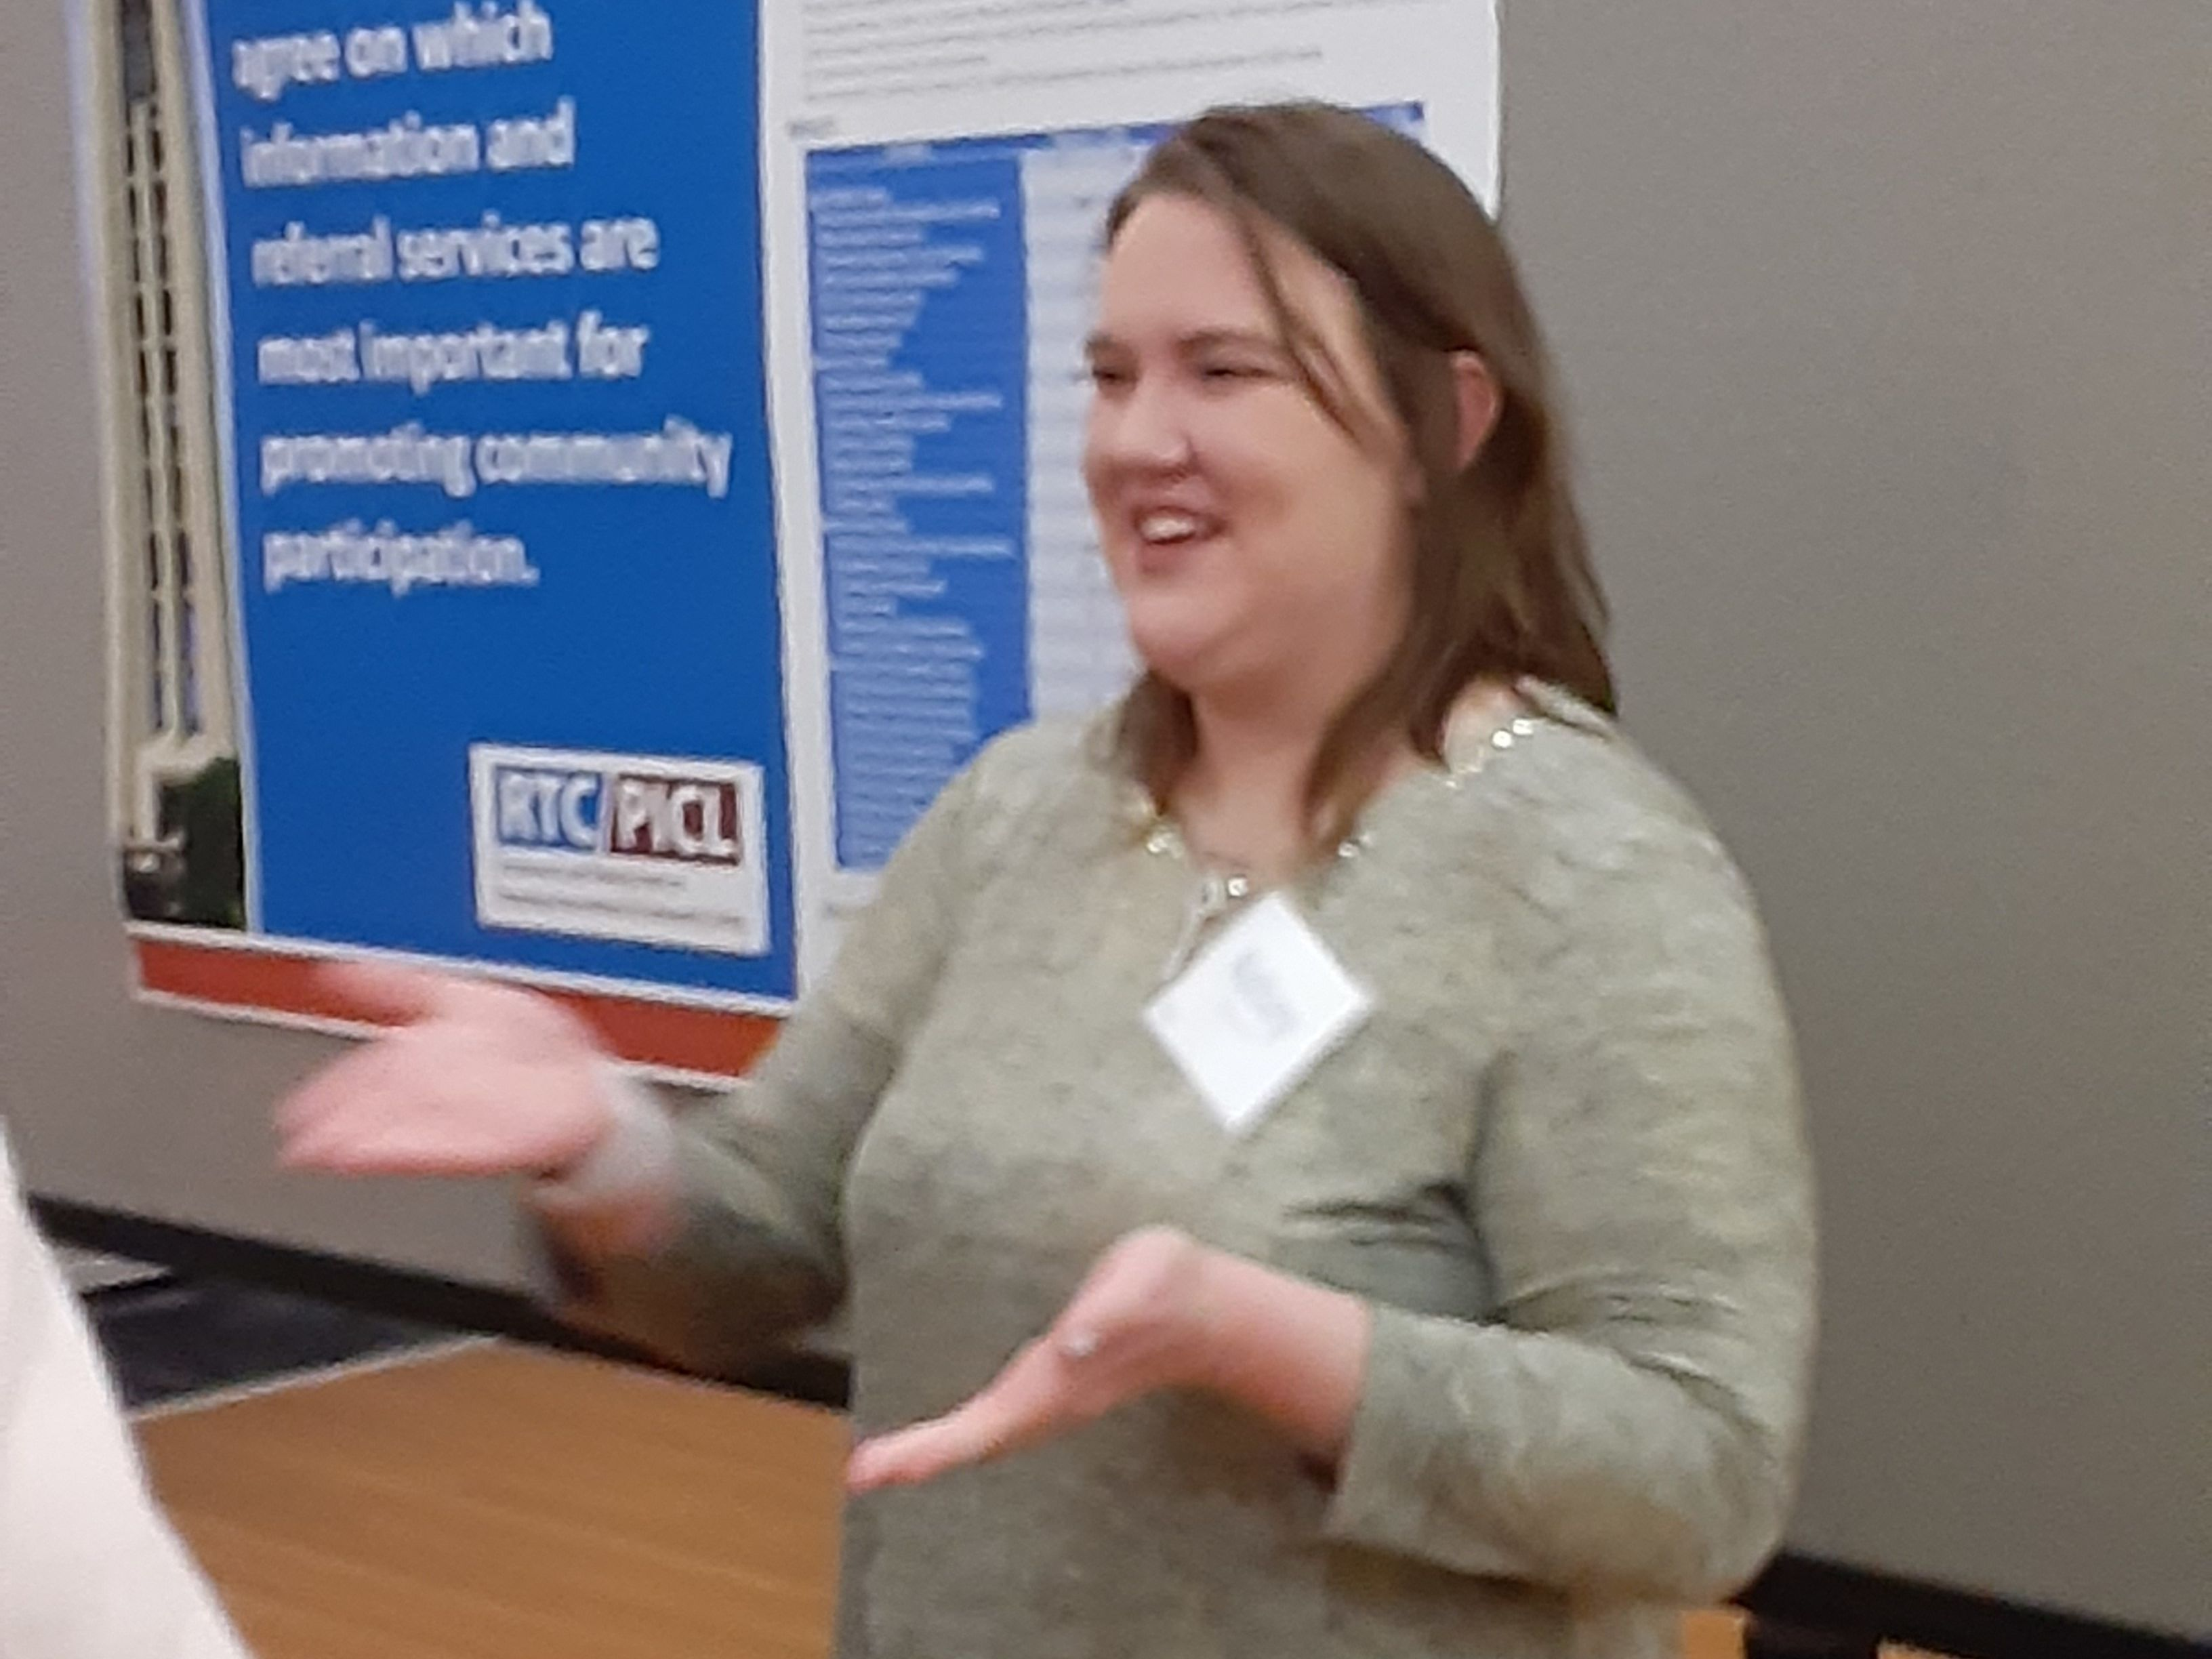 Kelsey Shinnick Goddard presents a poster at the Lifespan Institute Collaboratory